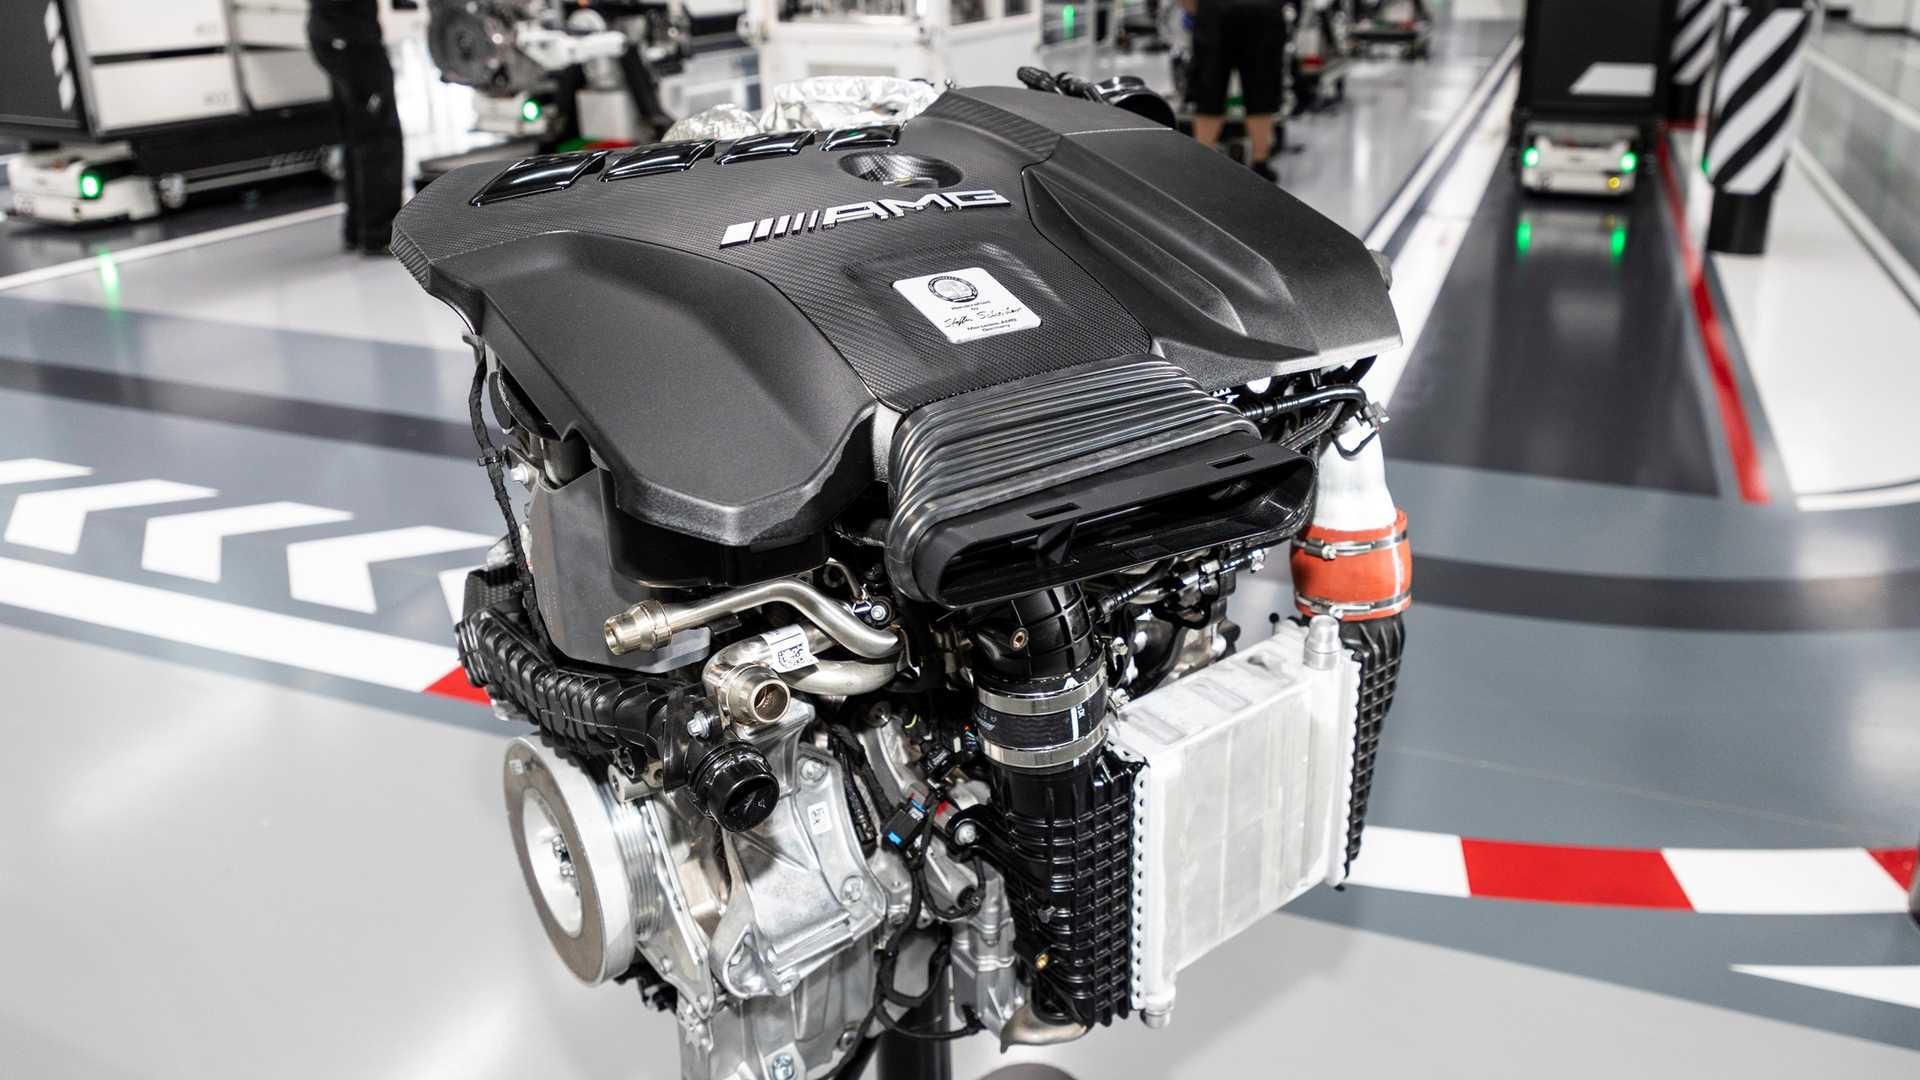 mercedes-amg-m139-engine-20